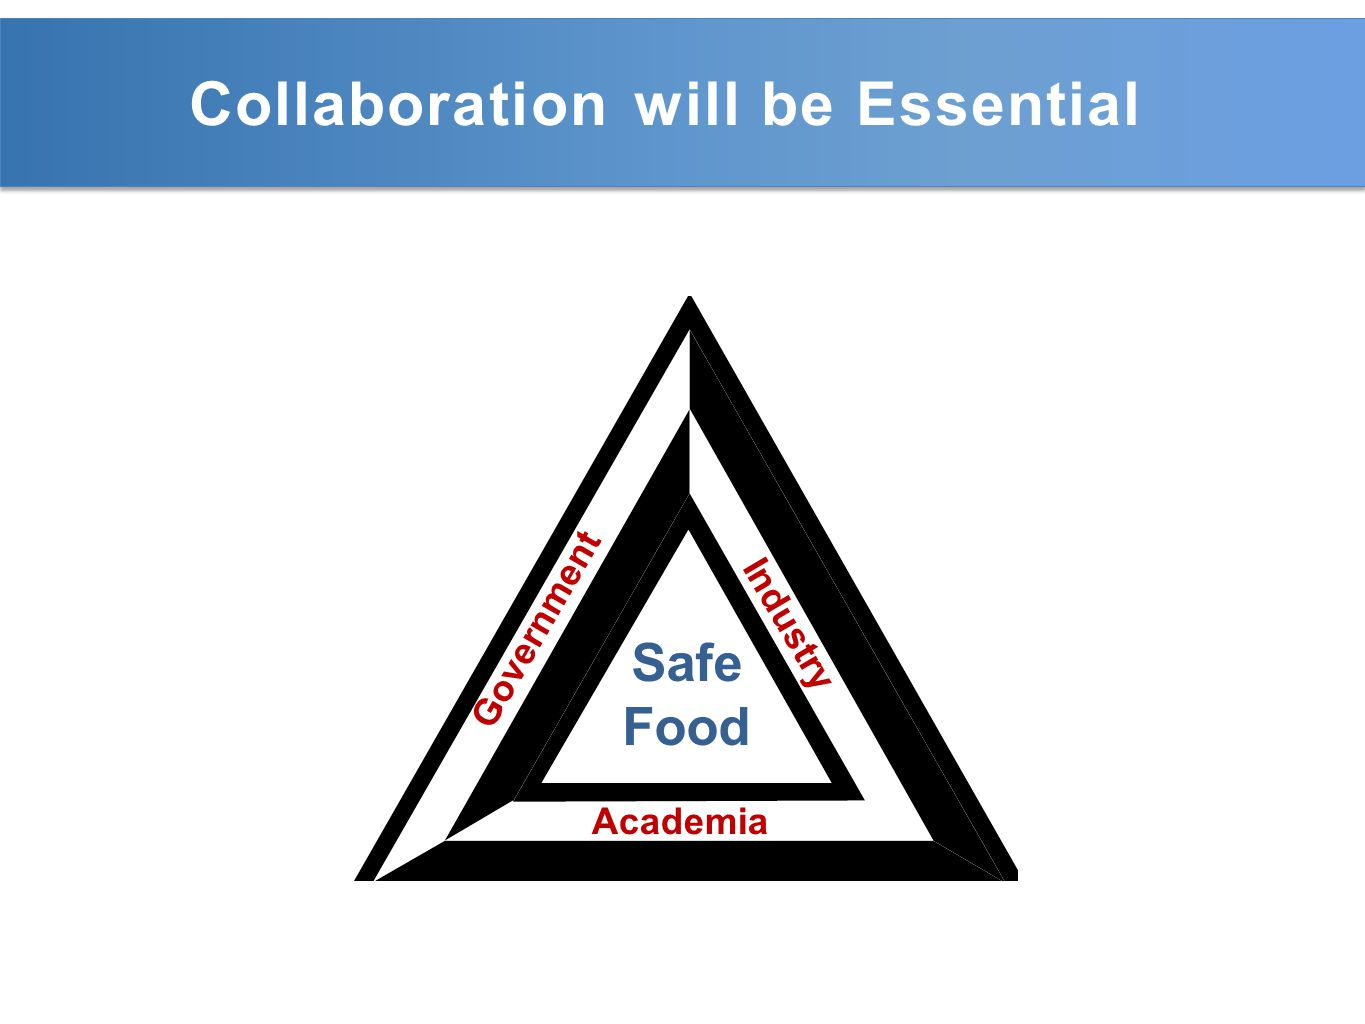 Collaboration will be Essential